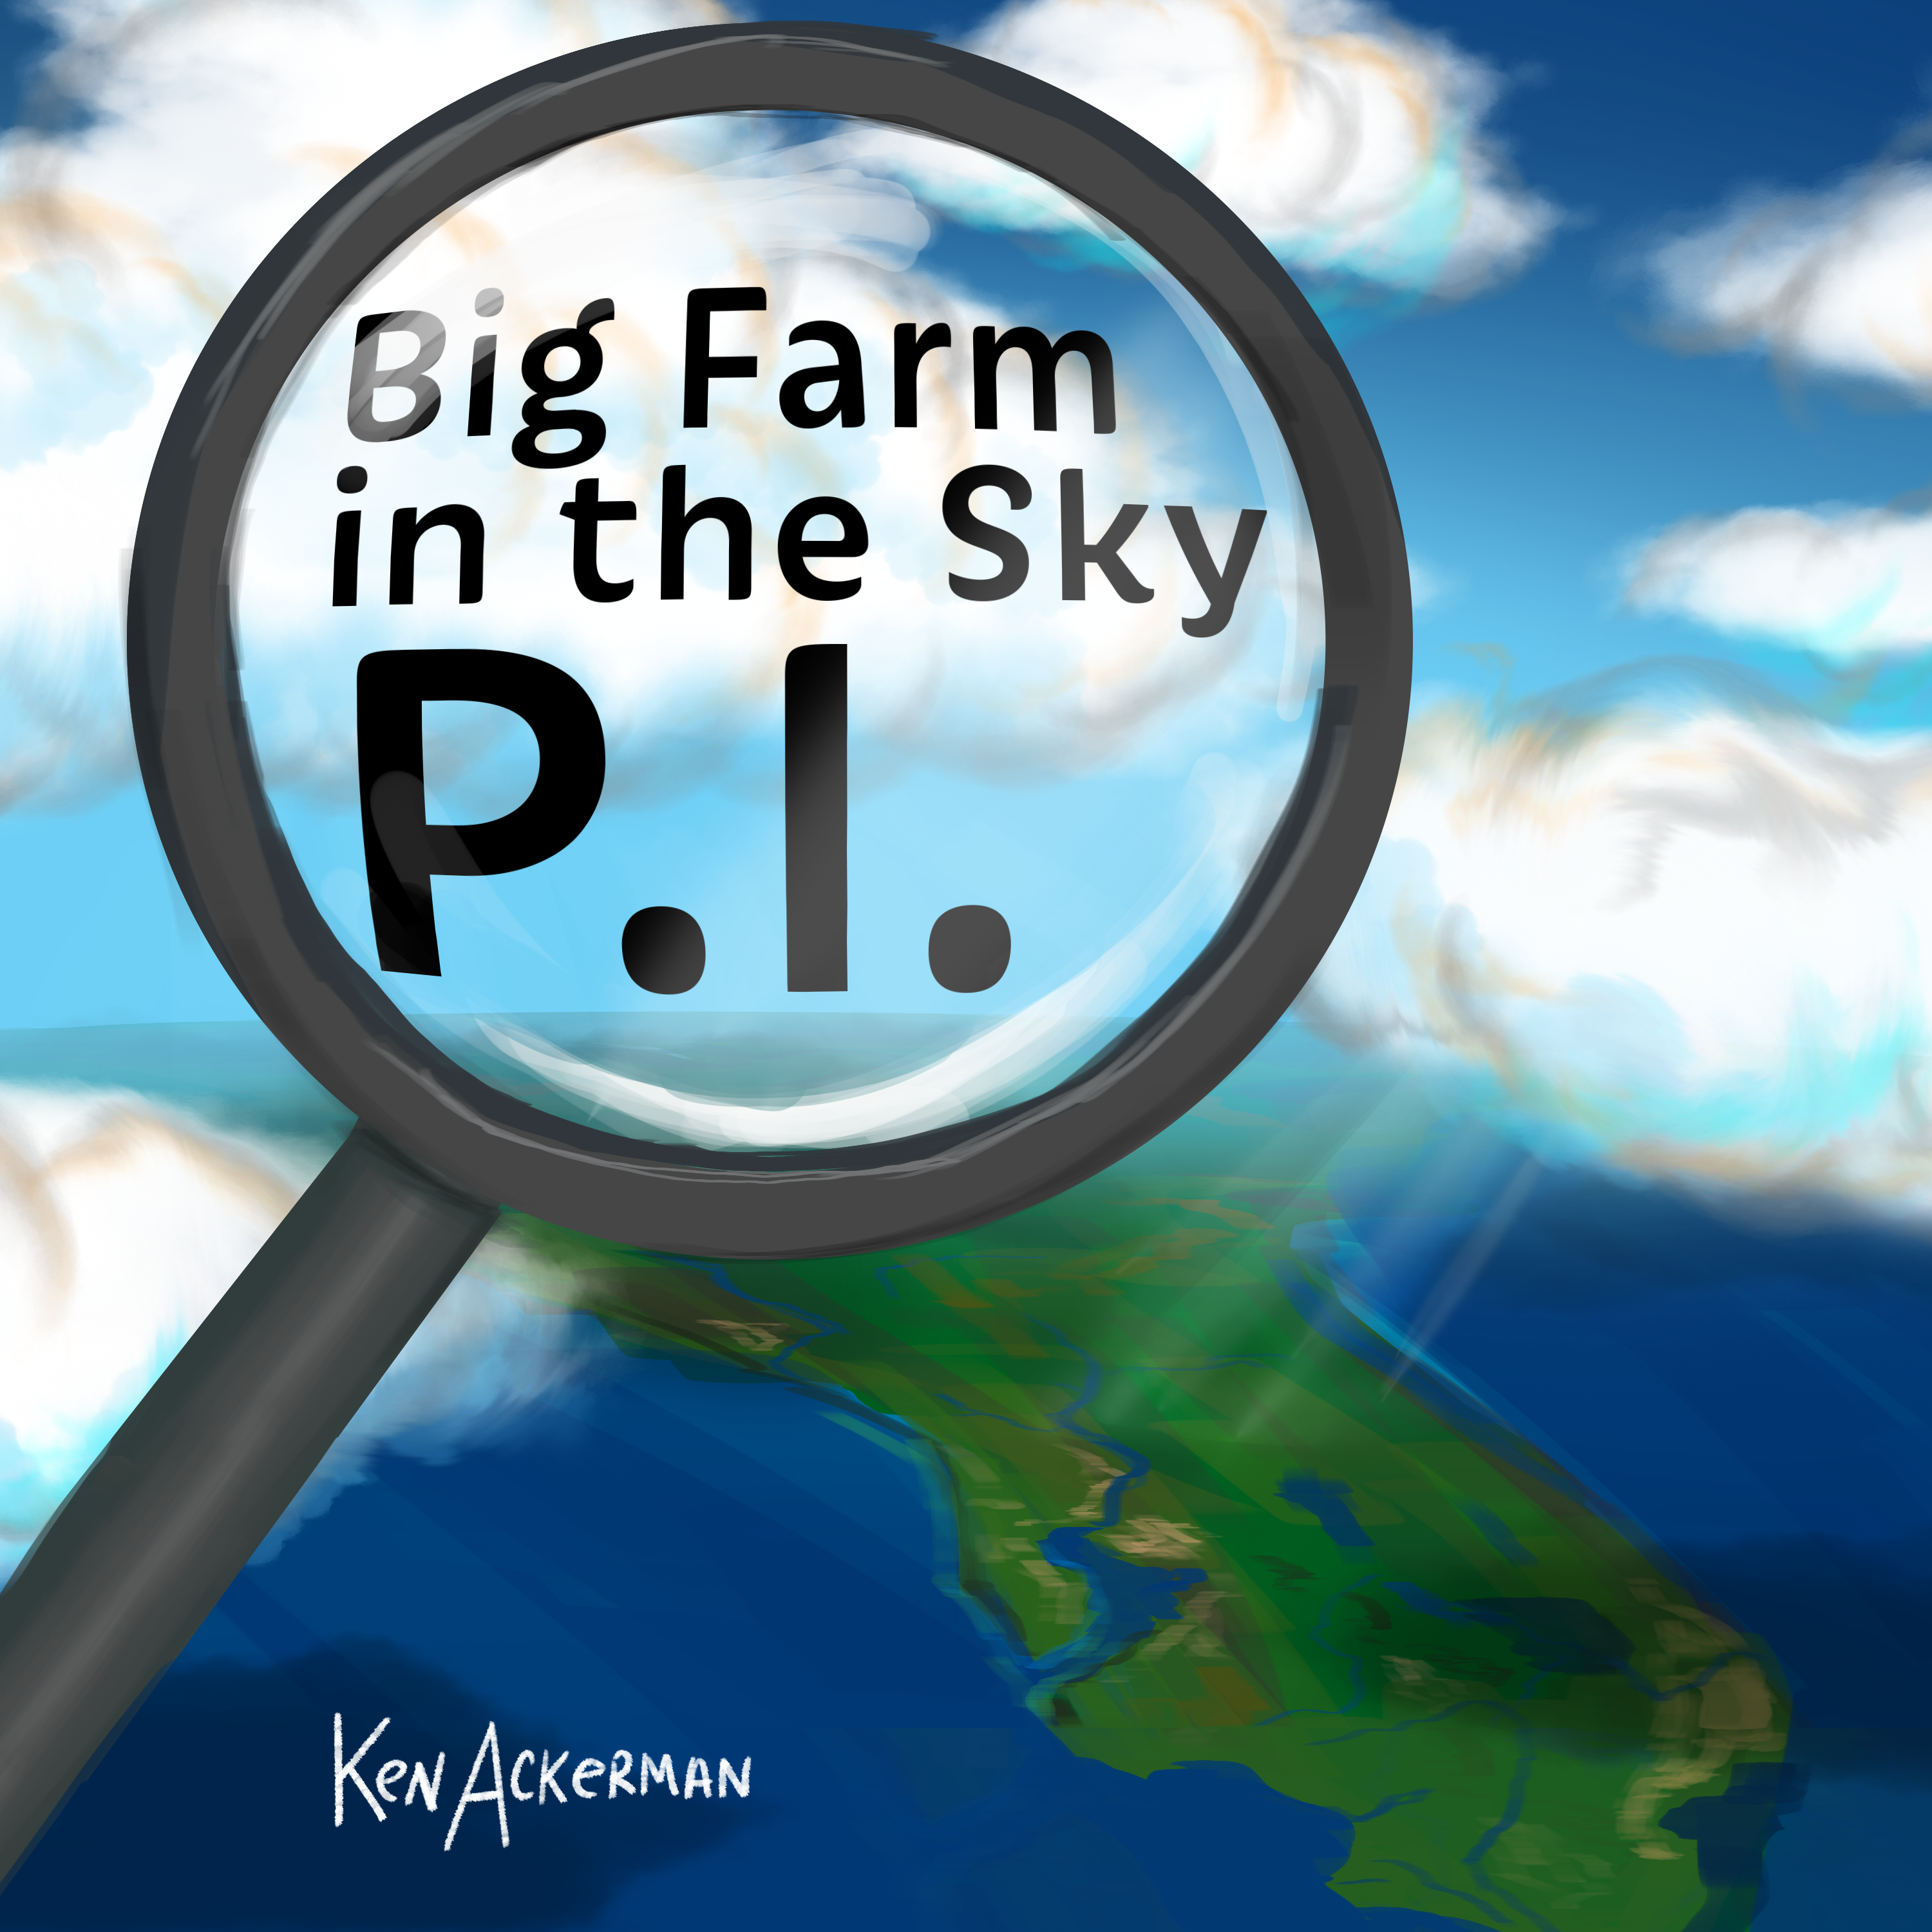 764 - Case of the Hickory Hangout | Big Farm in the Sky P.I. S2 E8